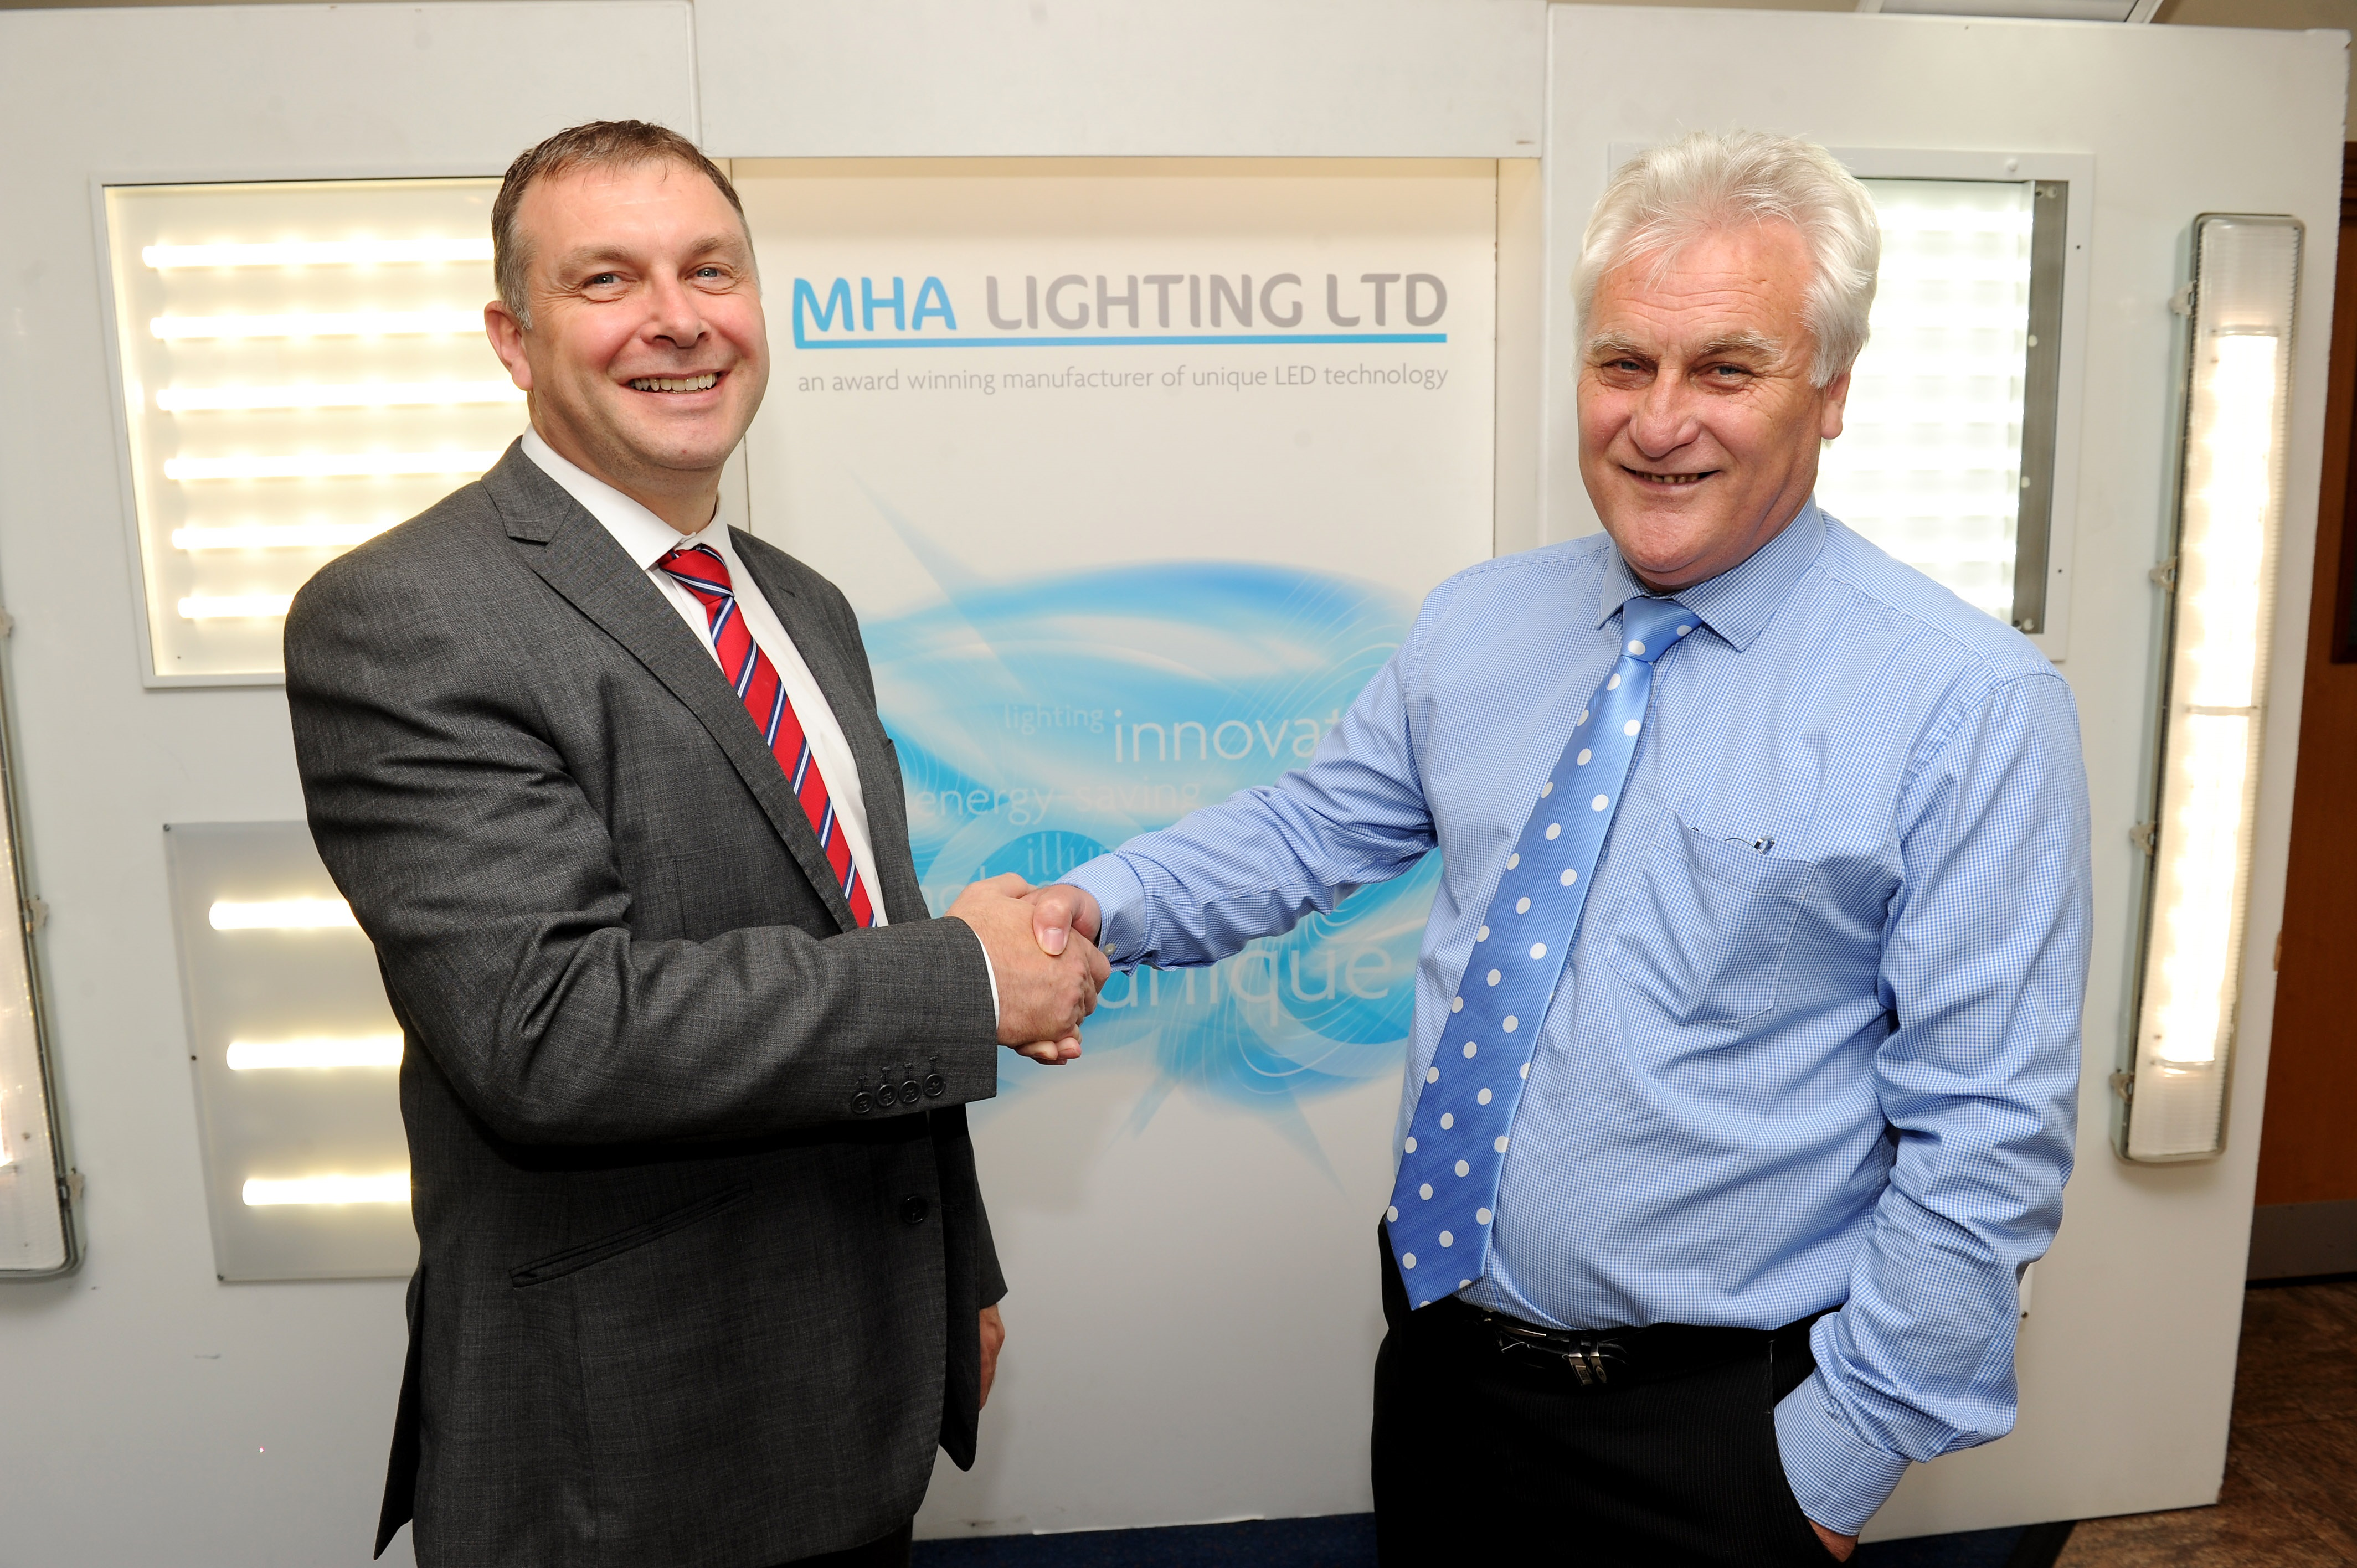 Press Release: MHA Lighting partners with Cell Security Ltd